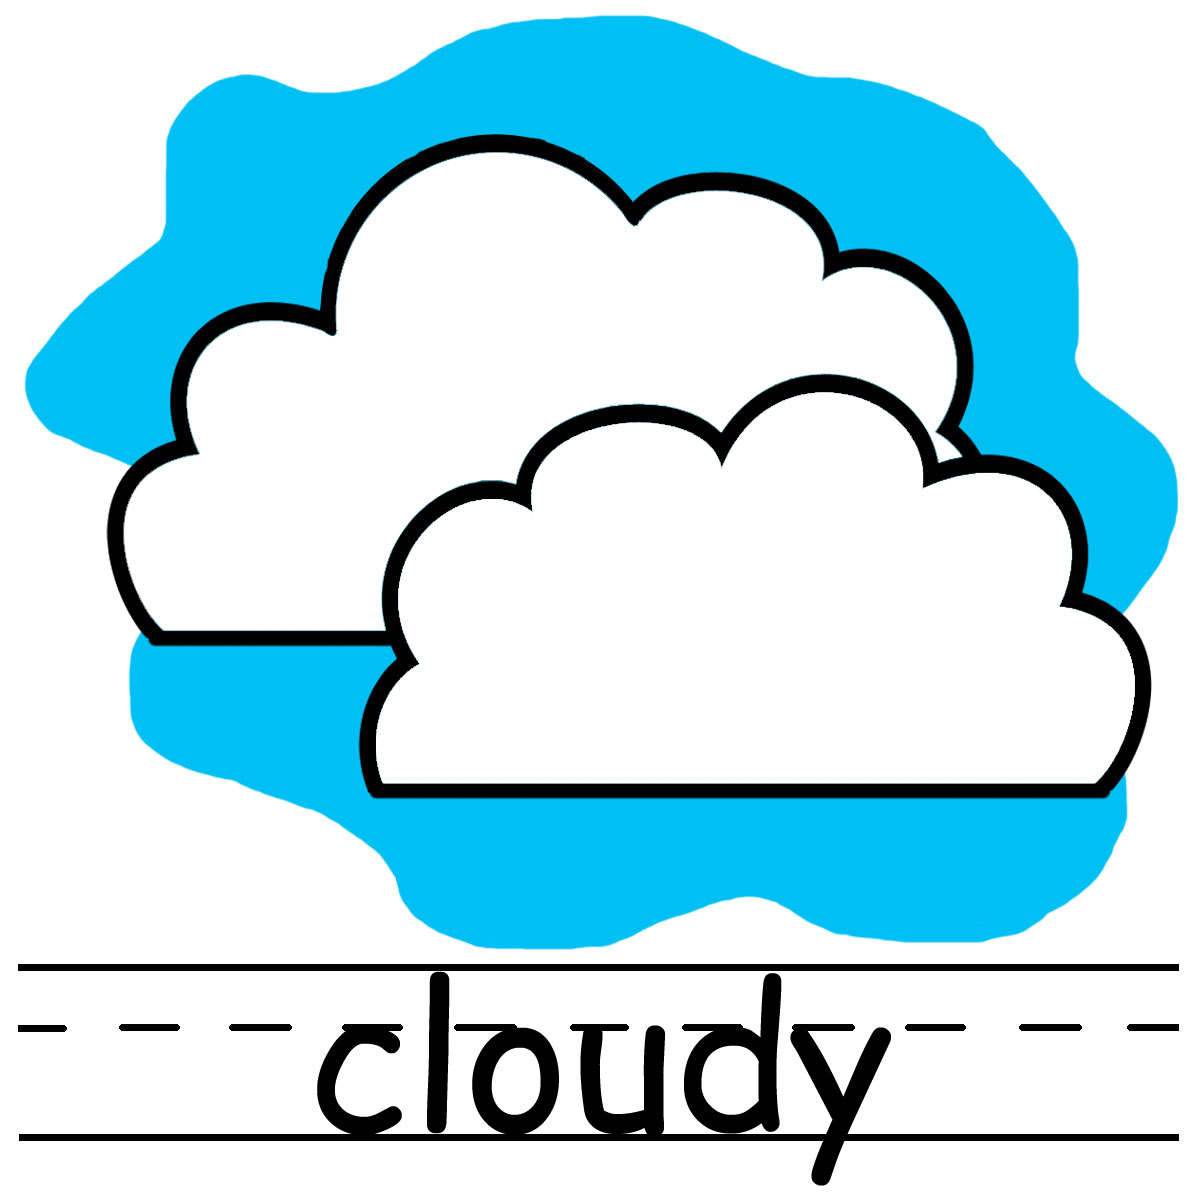 Windy foggy cloudy day clipart.